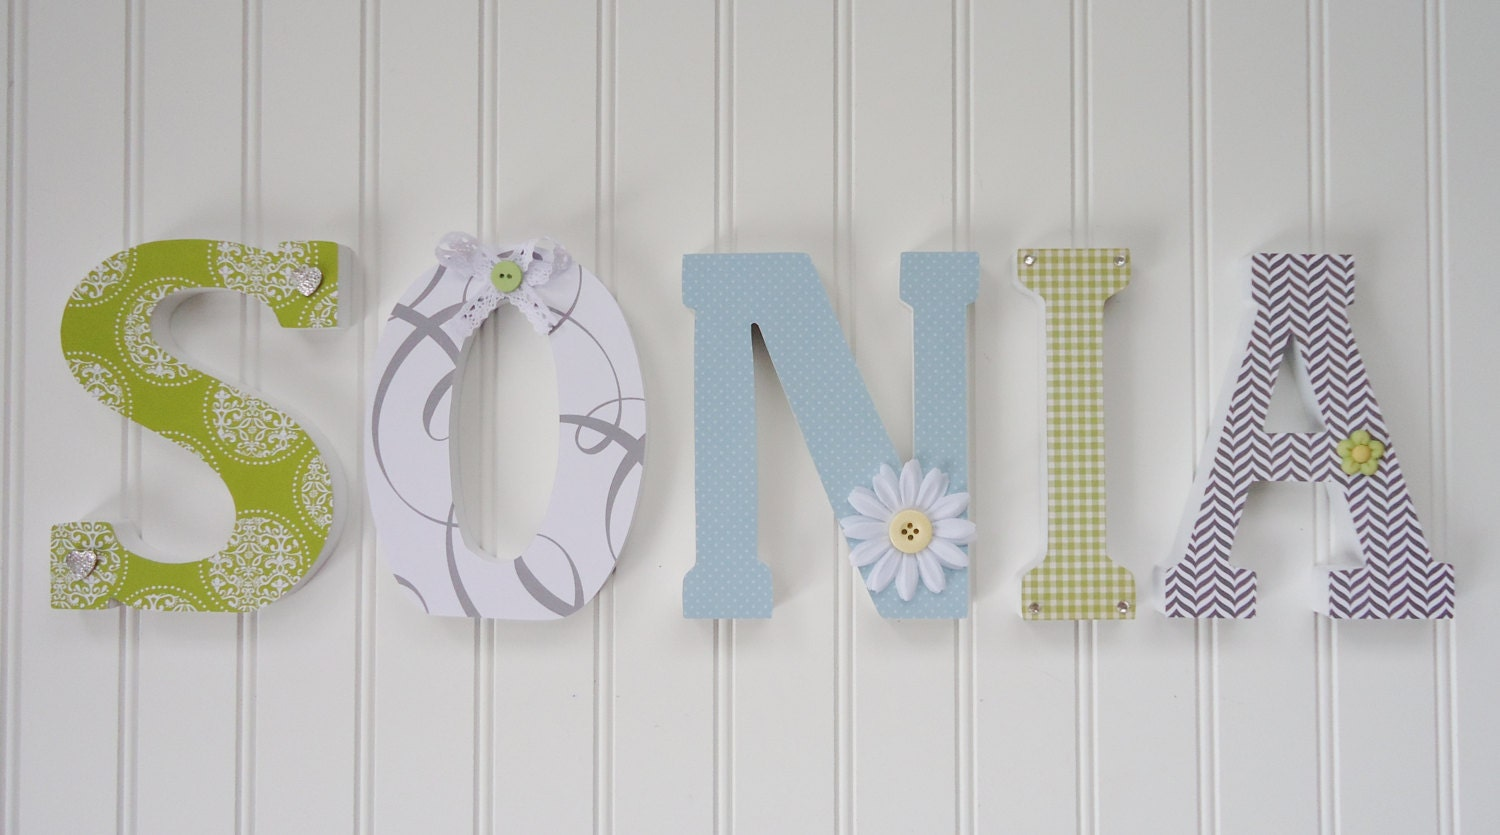 Wooden Wall Decor For Nursery : Unavailable listing on etsy